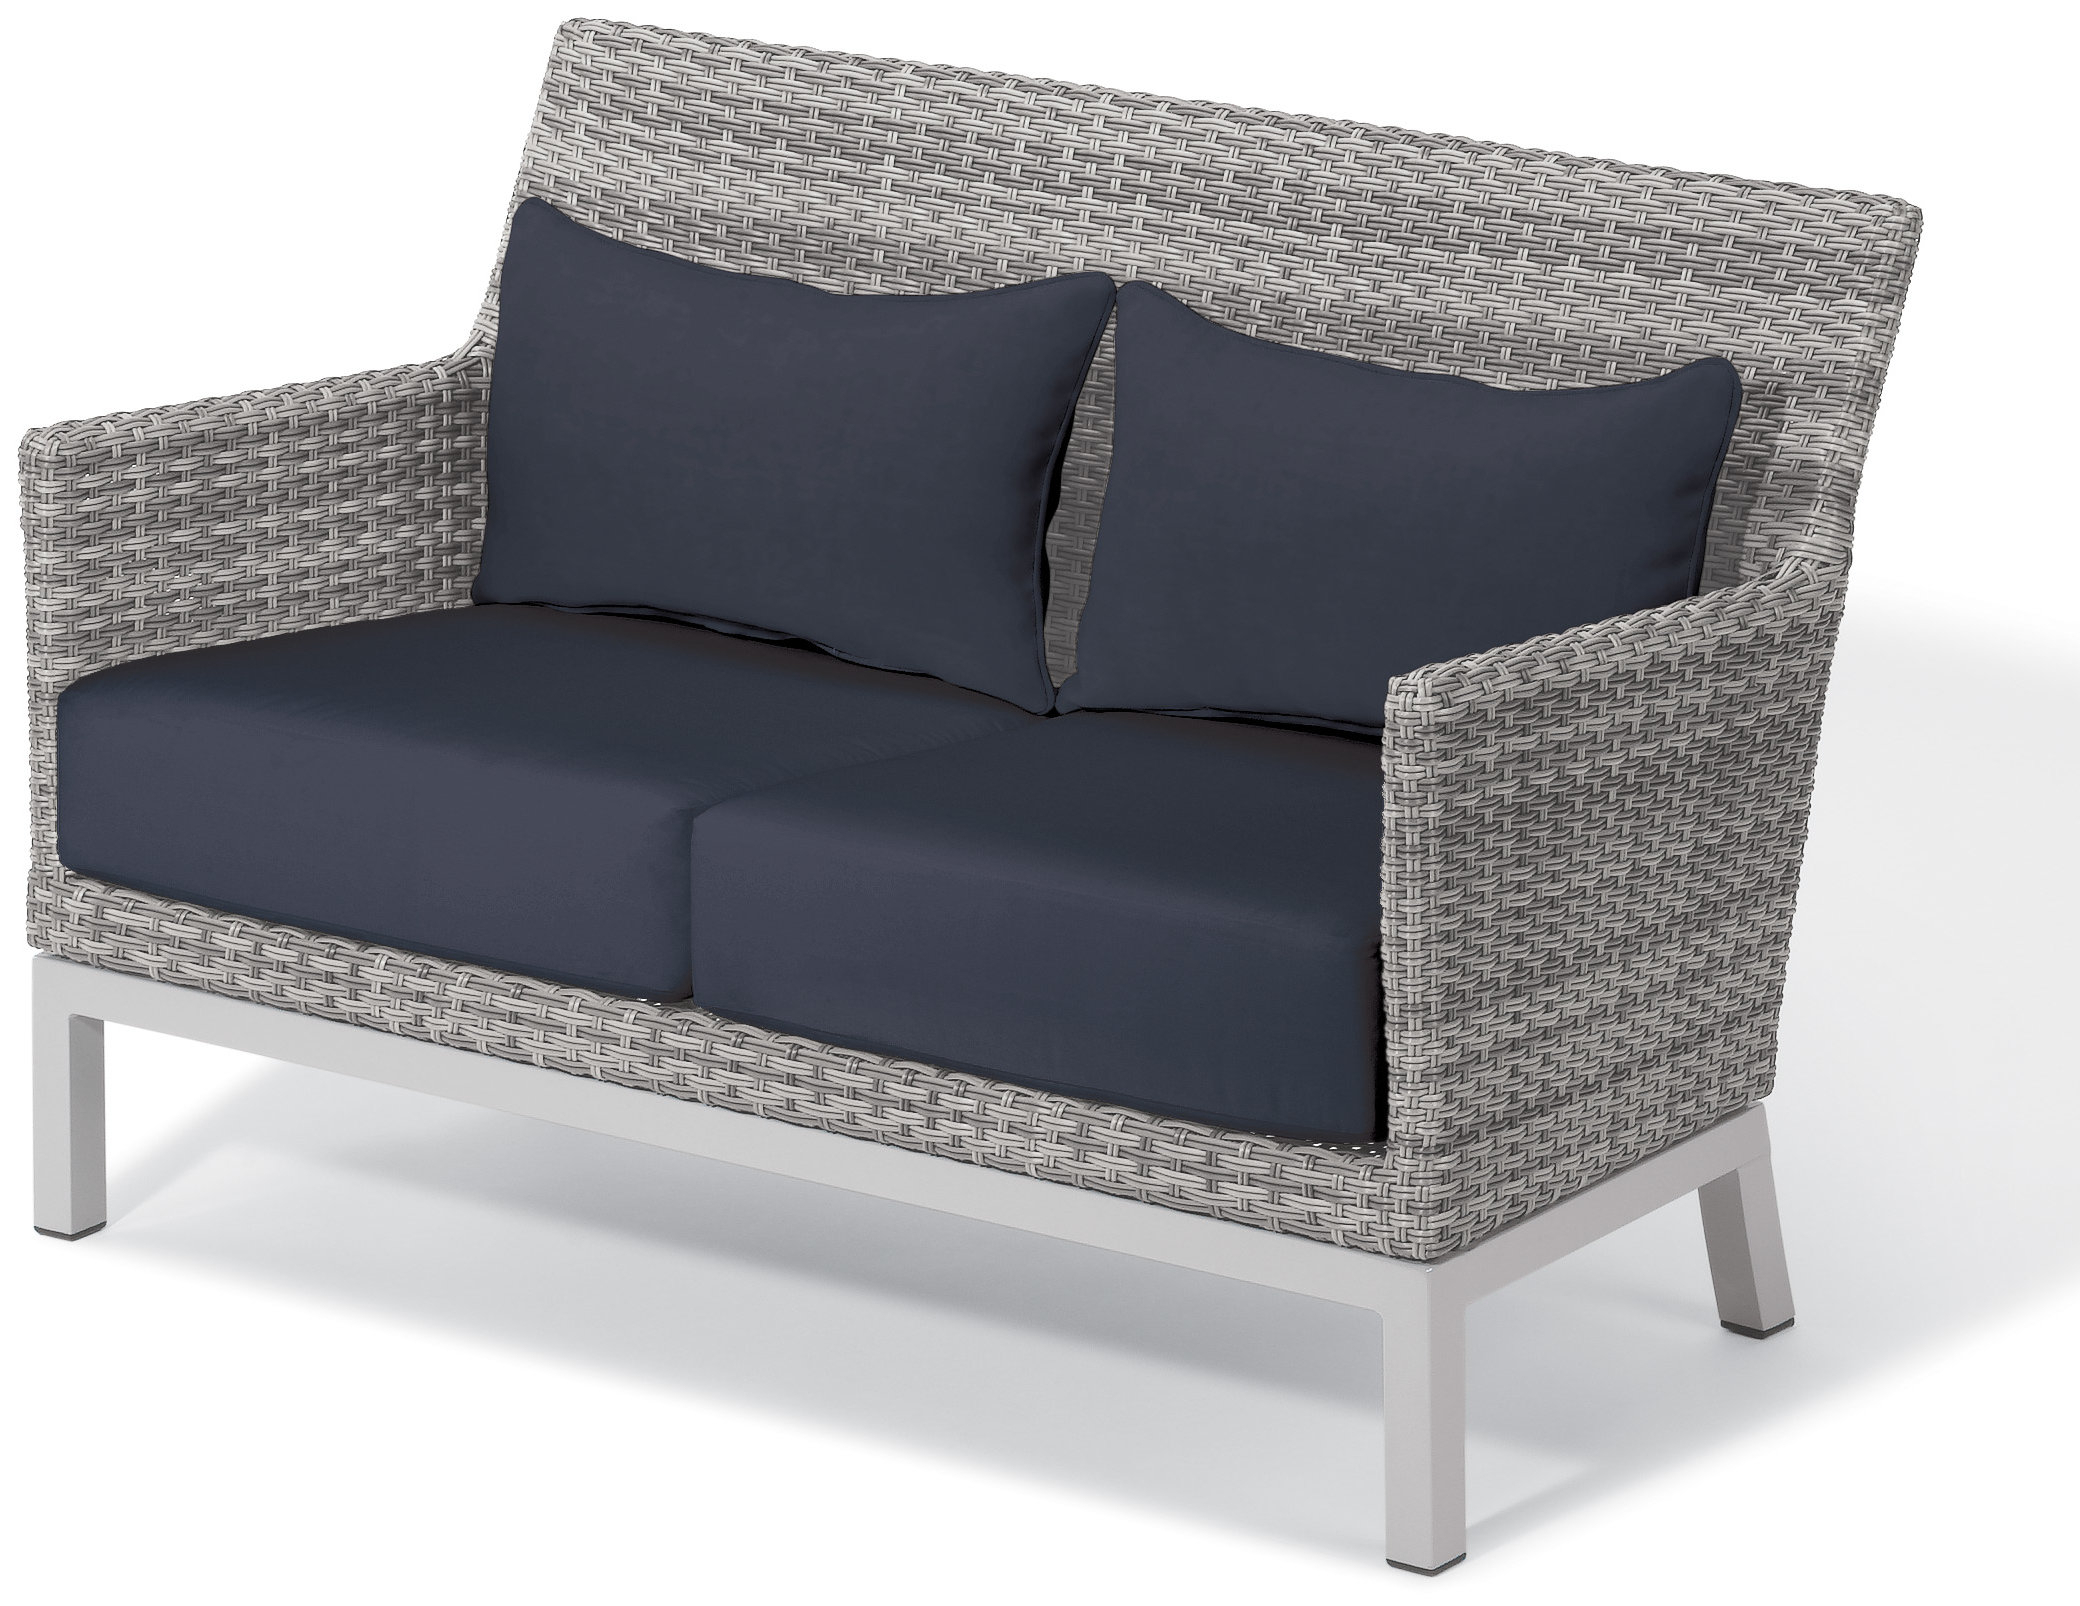 Saleem Loveseat With Cushions Regarding Widely Used Castelli Loveseats With Cushions (View 8 of 20)